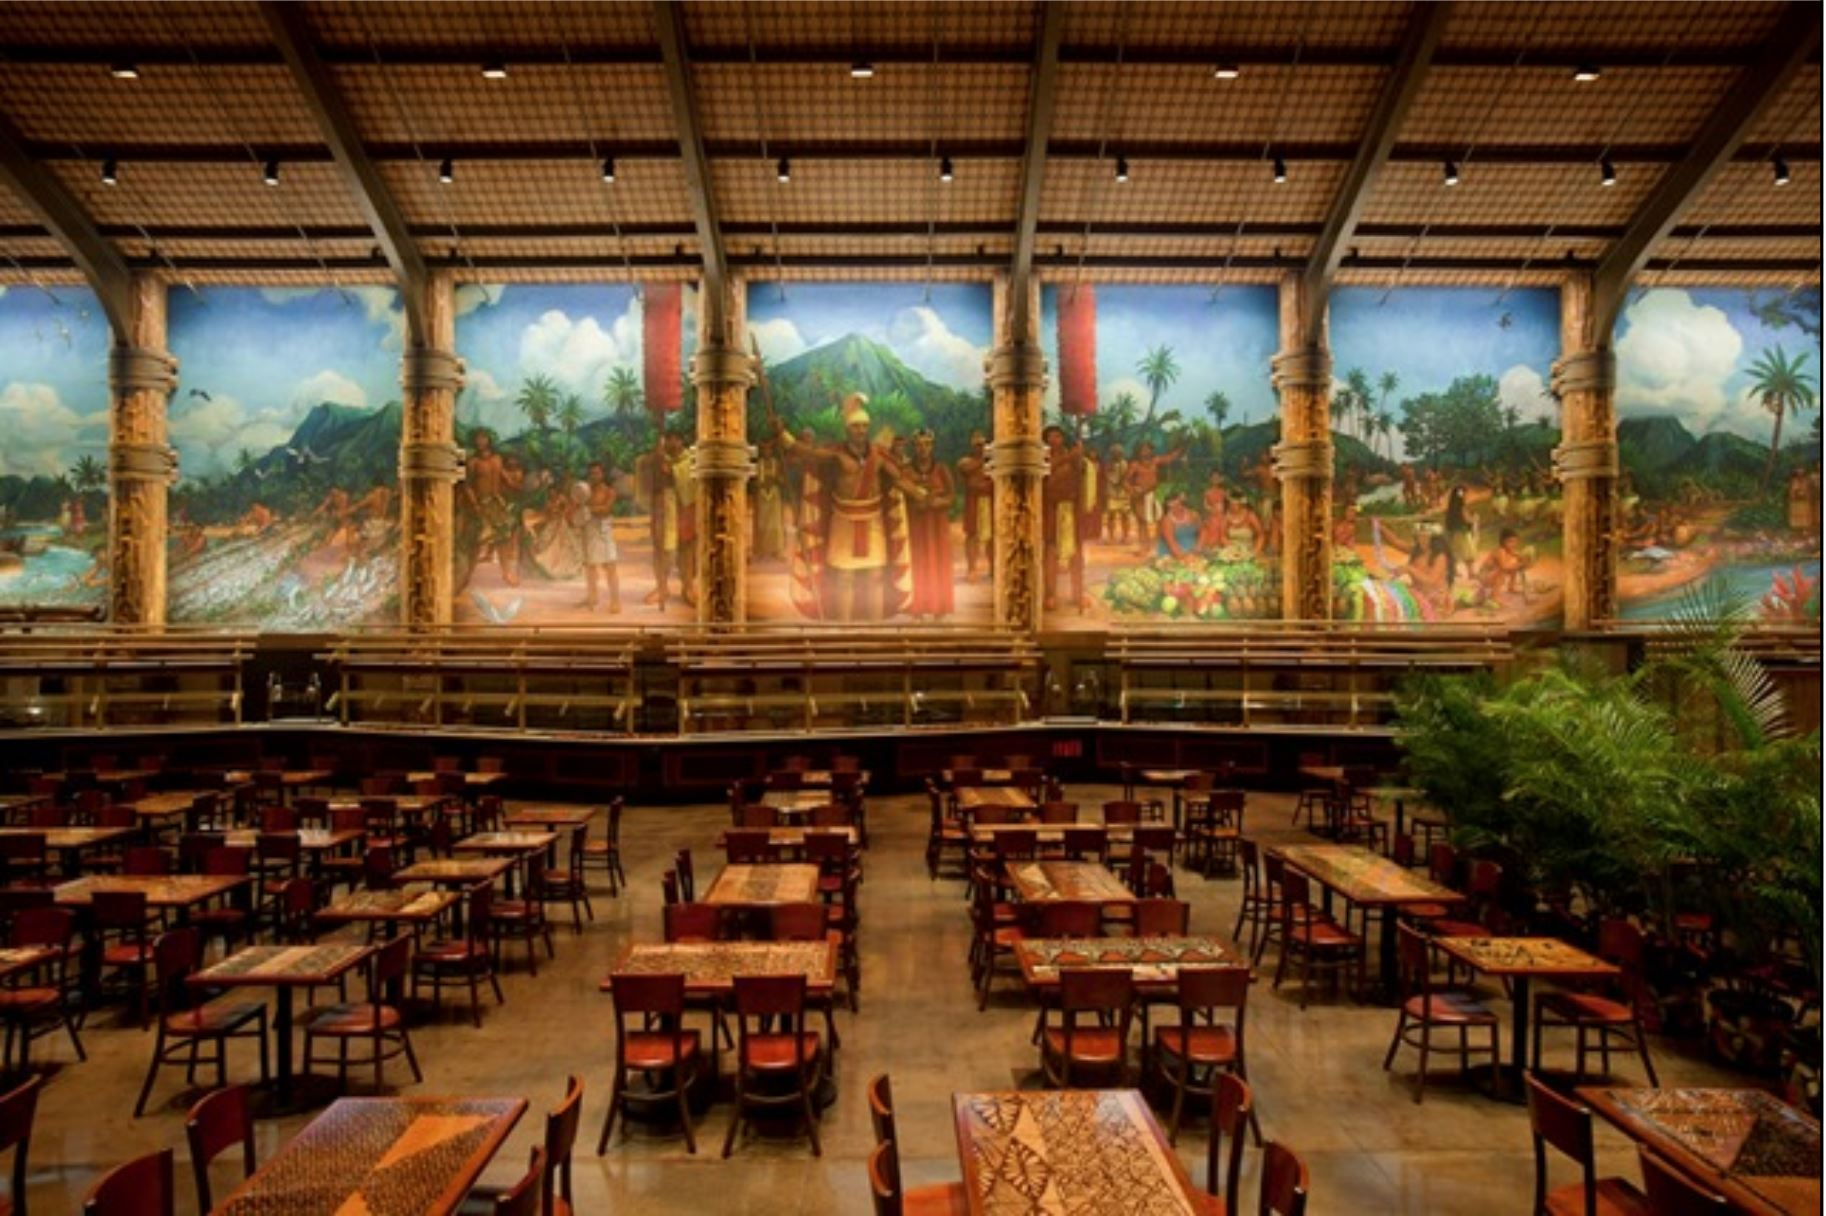 Image of the 360 degree mural in the Gateway Dining facility at the Polynesian Cultural Center that depicts the welcoming of guests to a great Hawaiian luau with the center figure of King Kamehameha